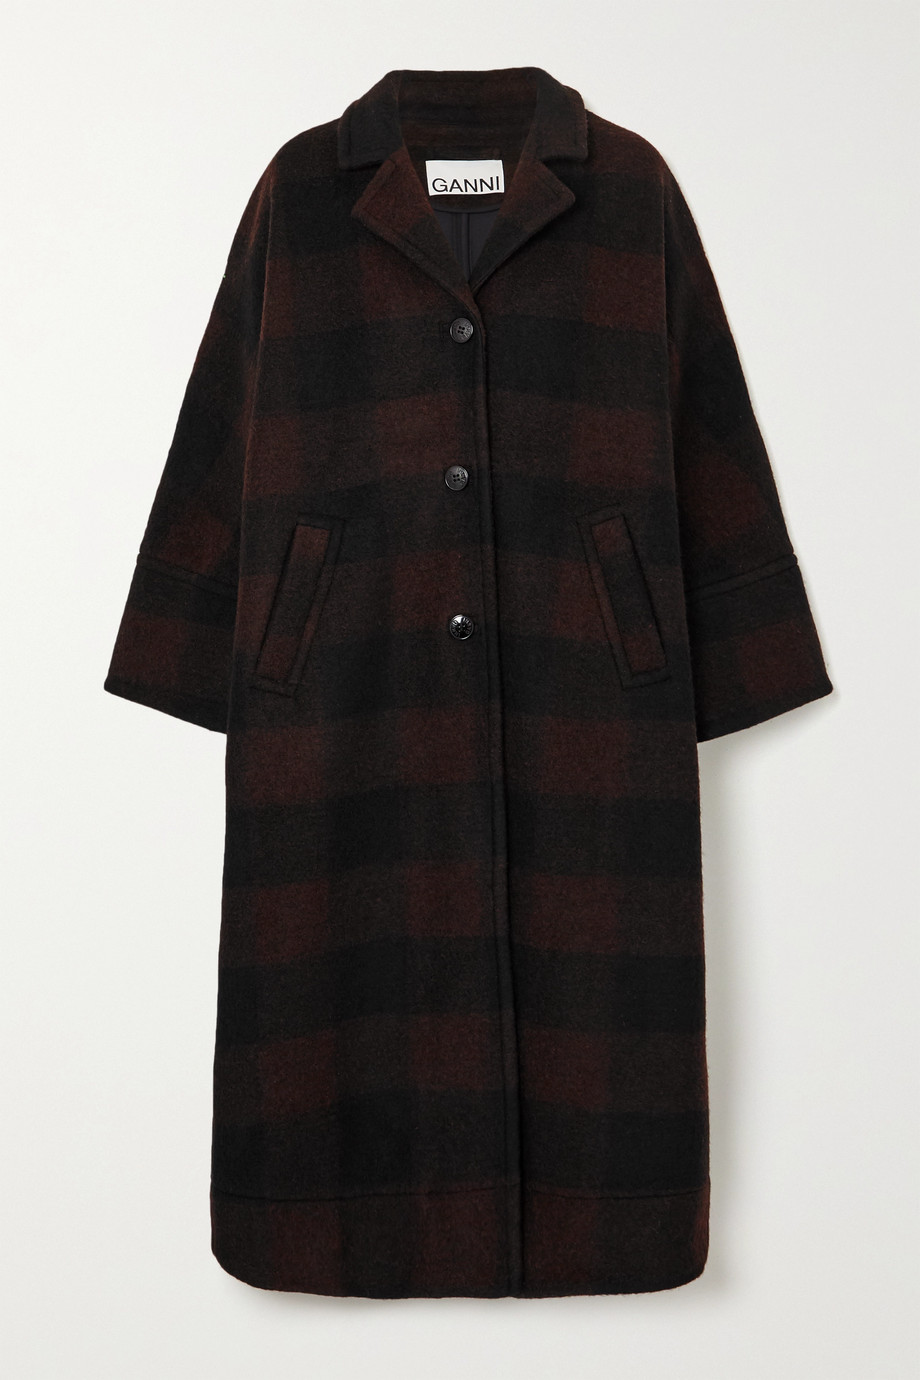 GANNI Checked wool-blend coat